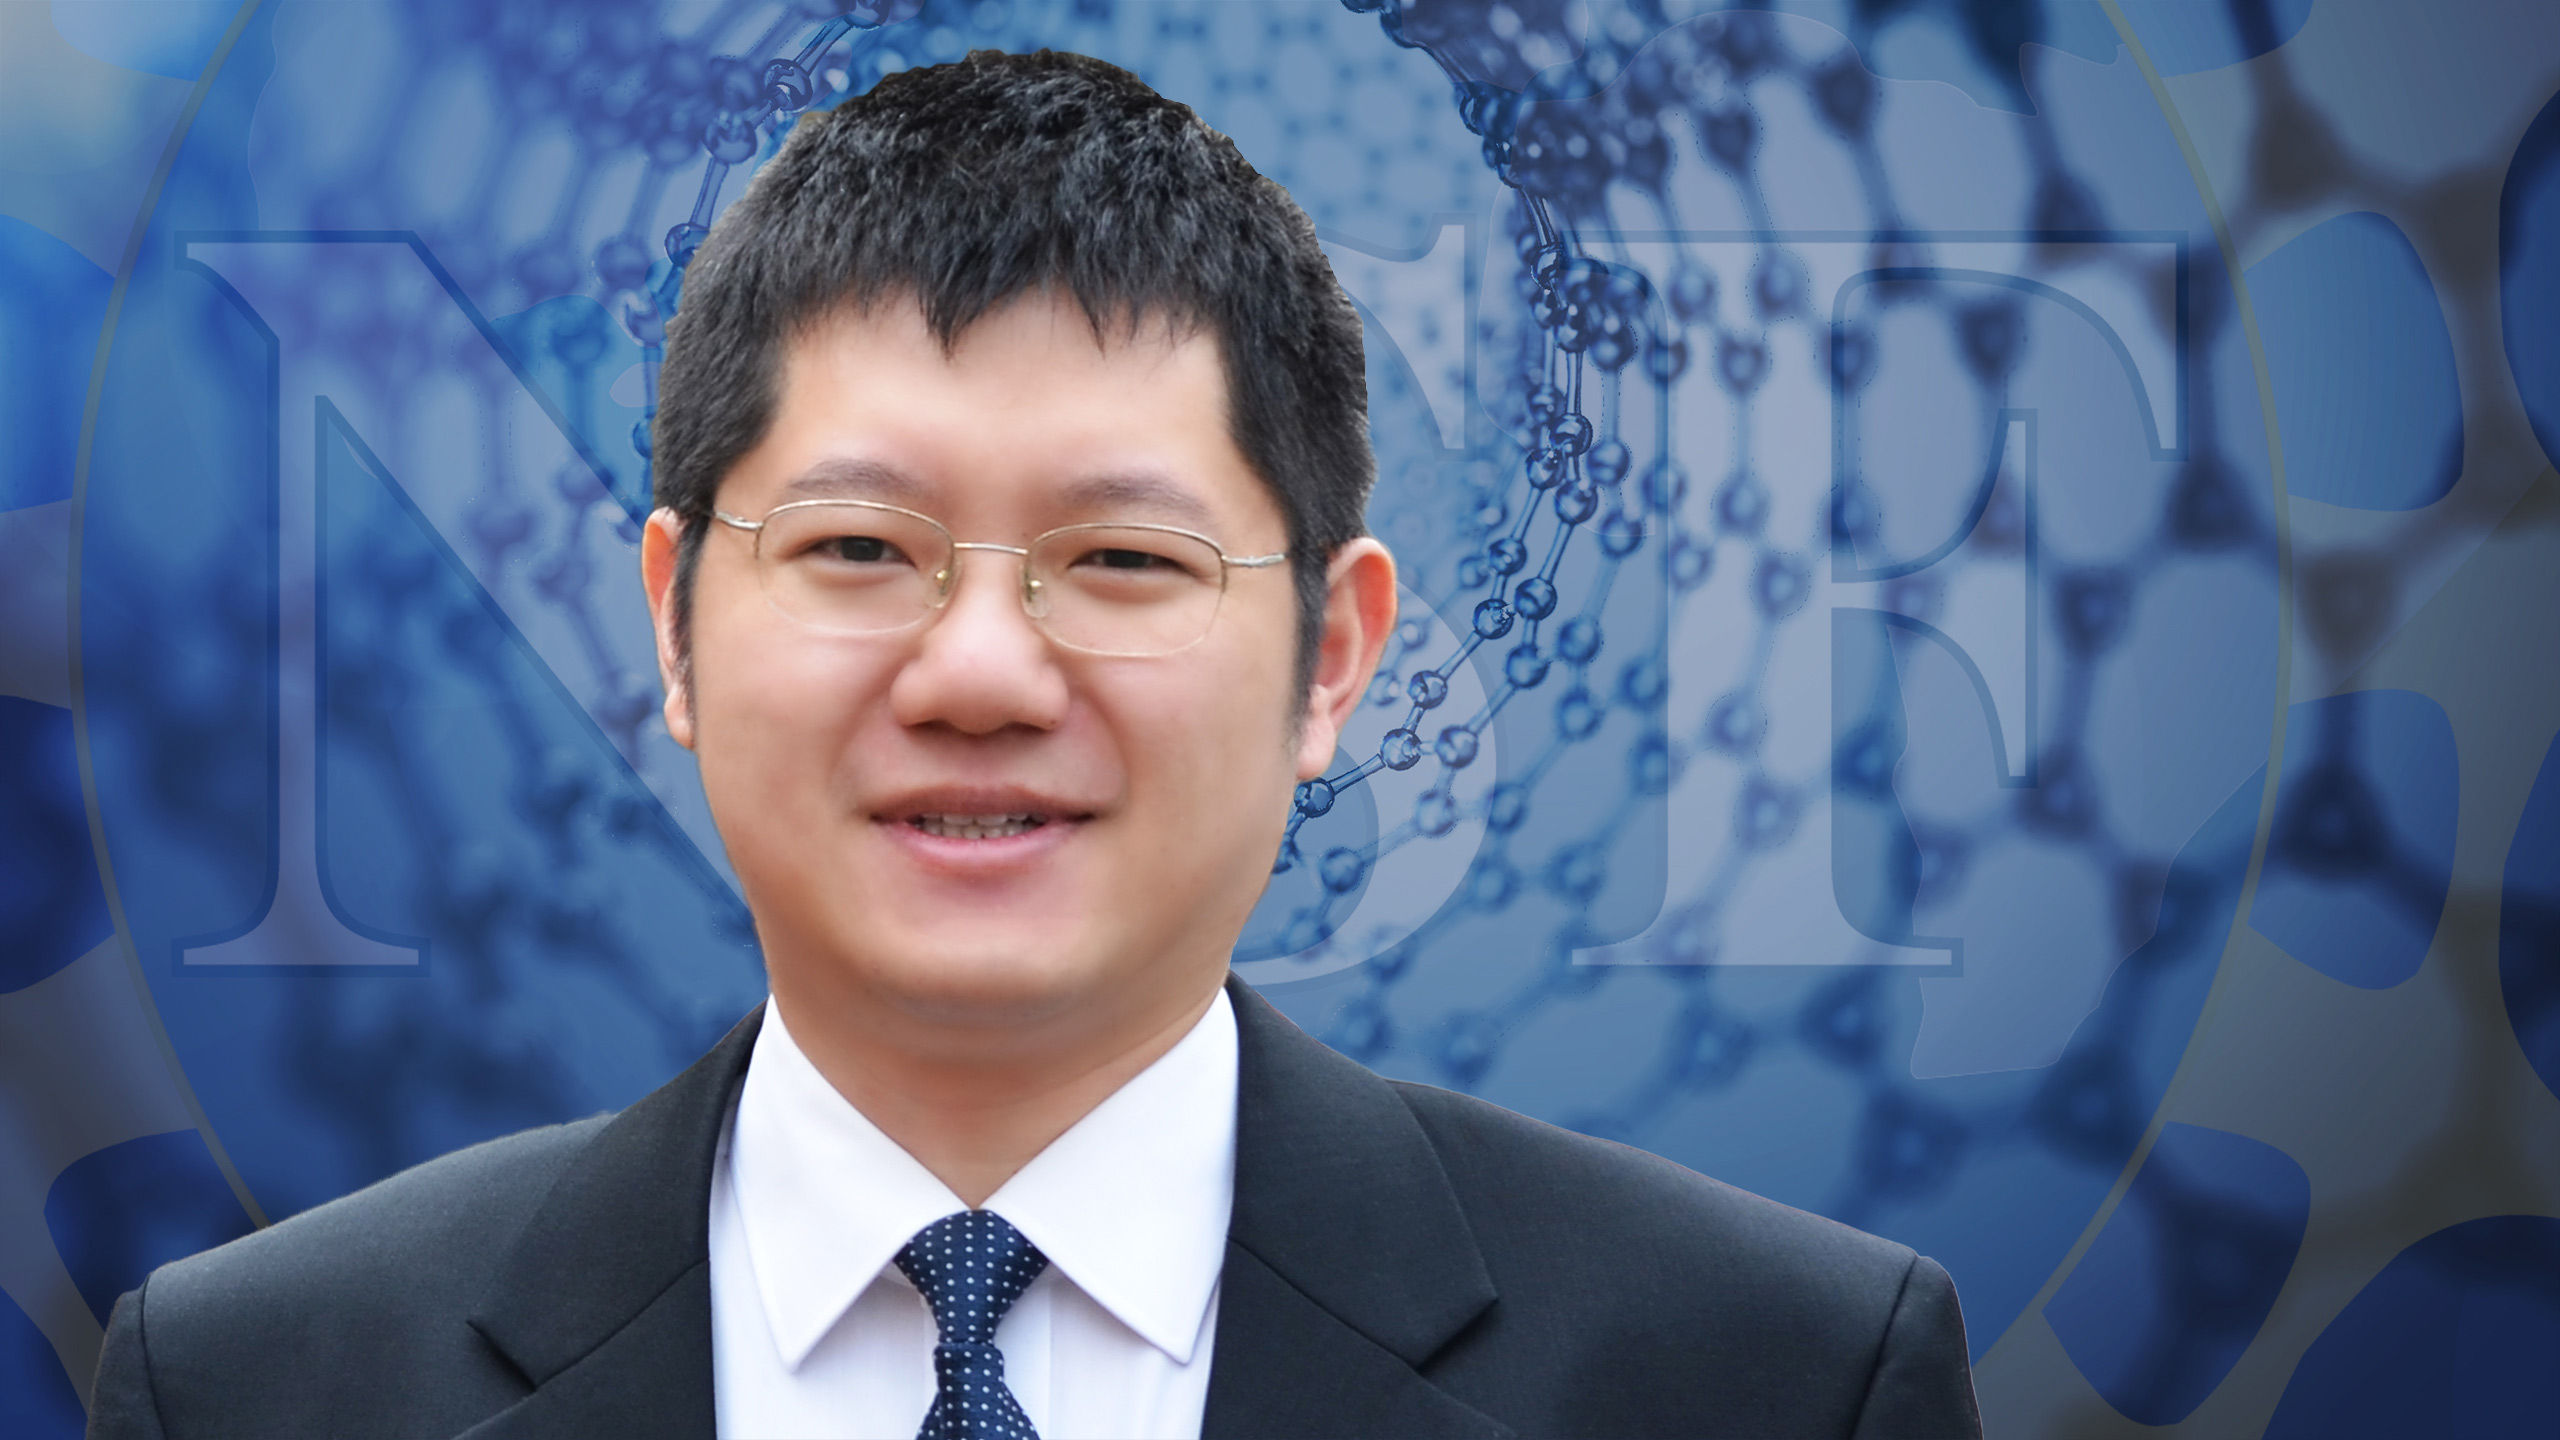 Dr. Dong Looks to Produce the Next Generation of Electronic Skin